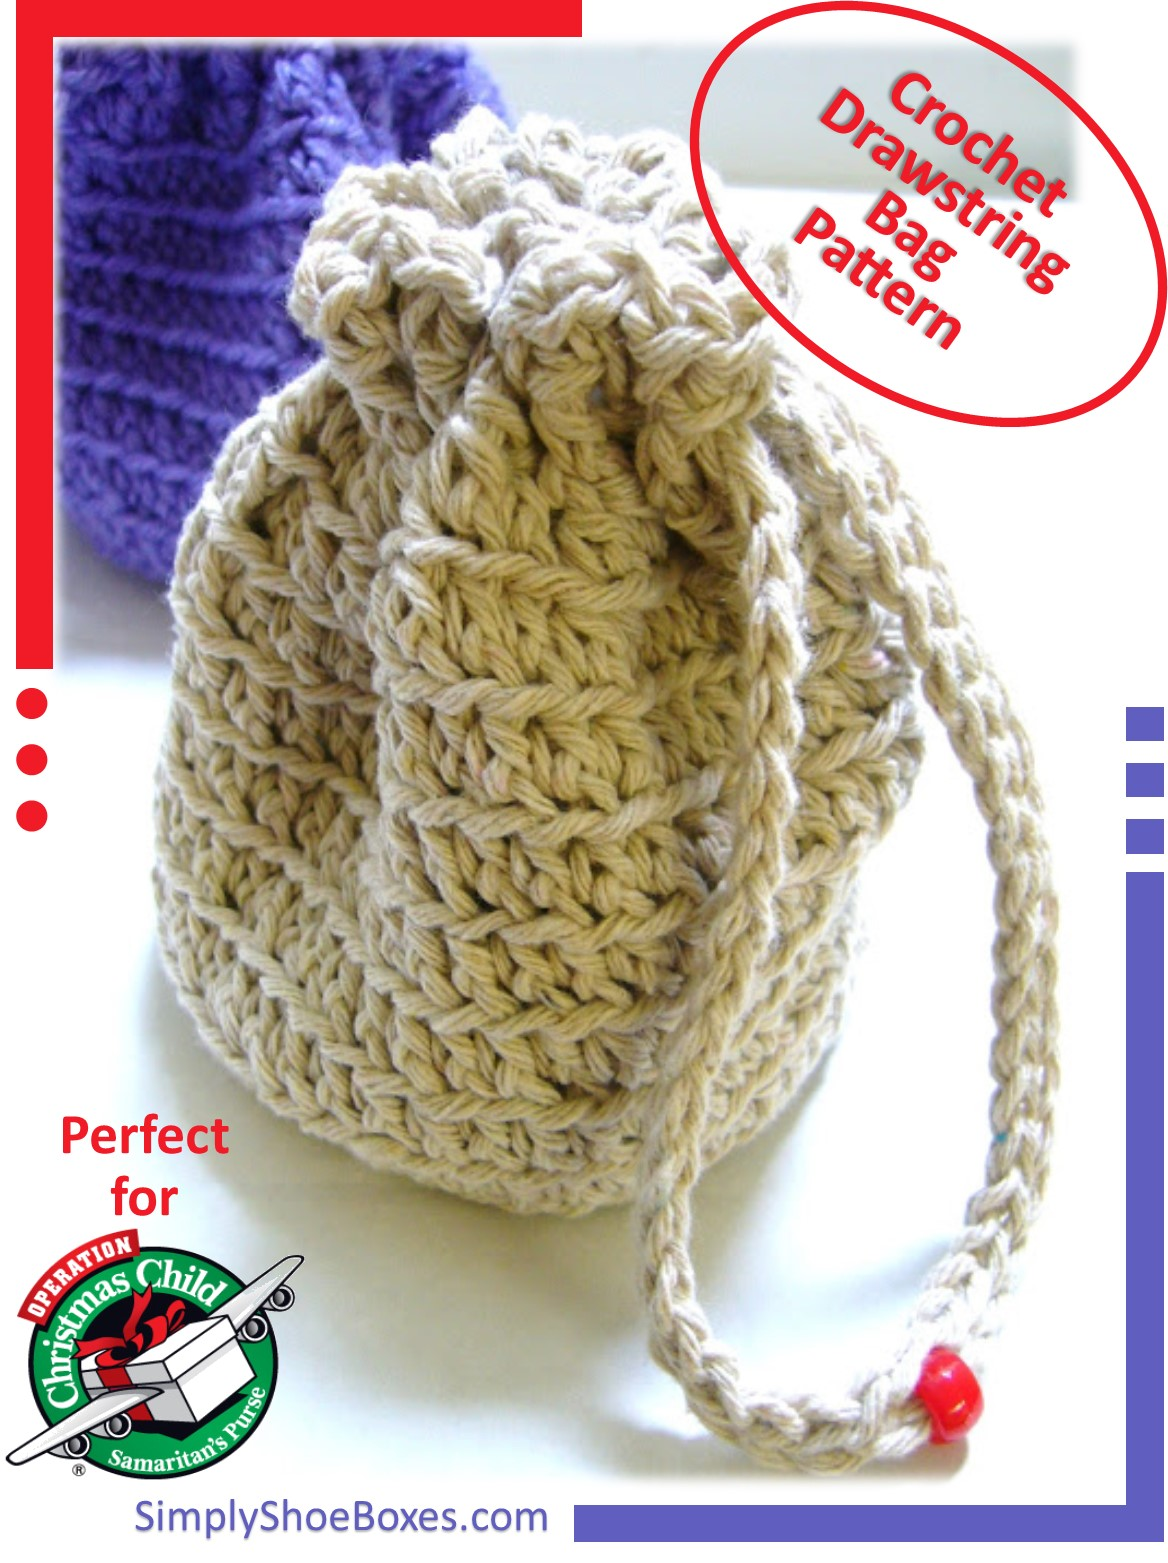 Free Crochet Patterns For Christmas Gift Bags : Simply Shoe Boxes: Simple Crocheted Stand-up, Drawstring ...